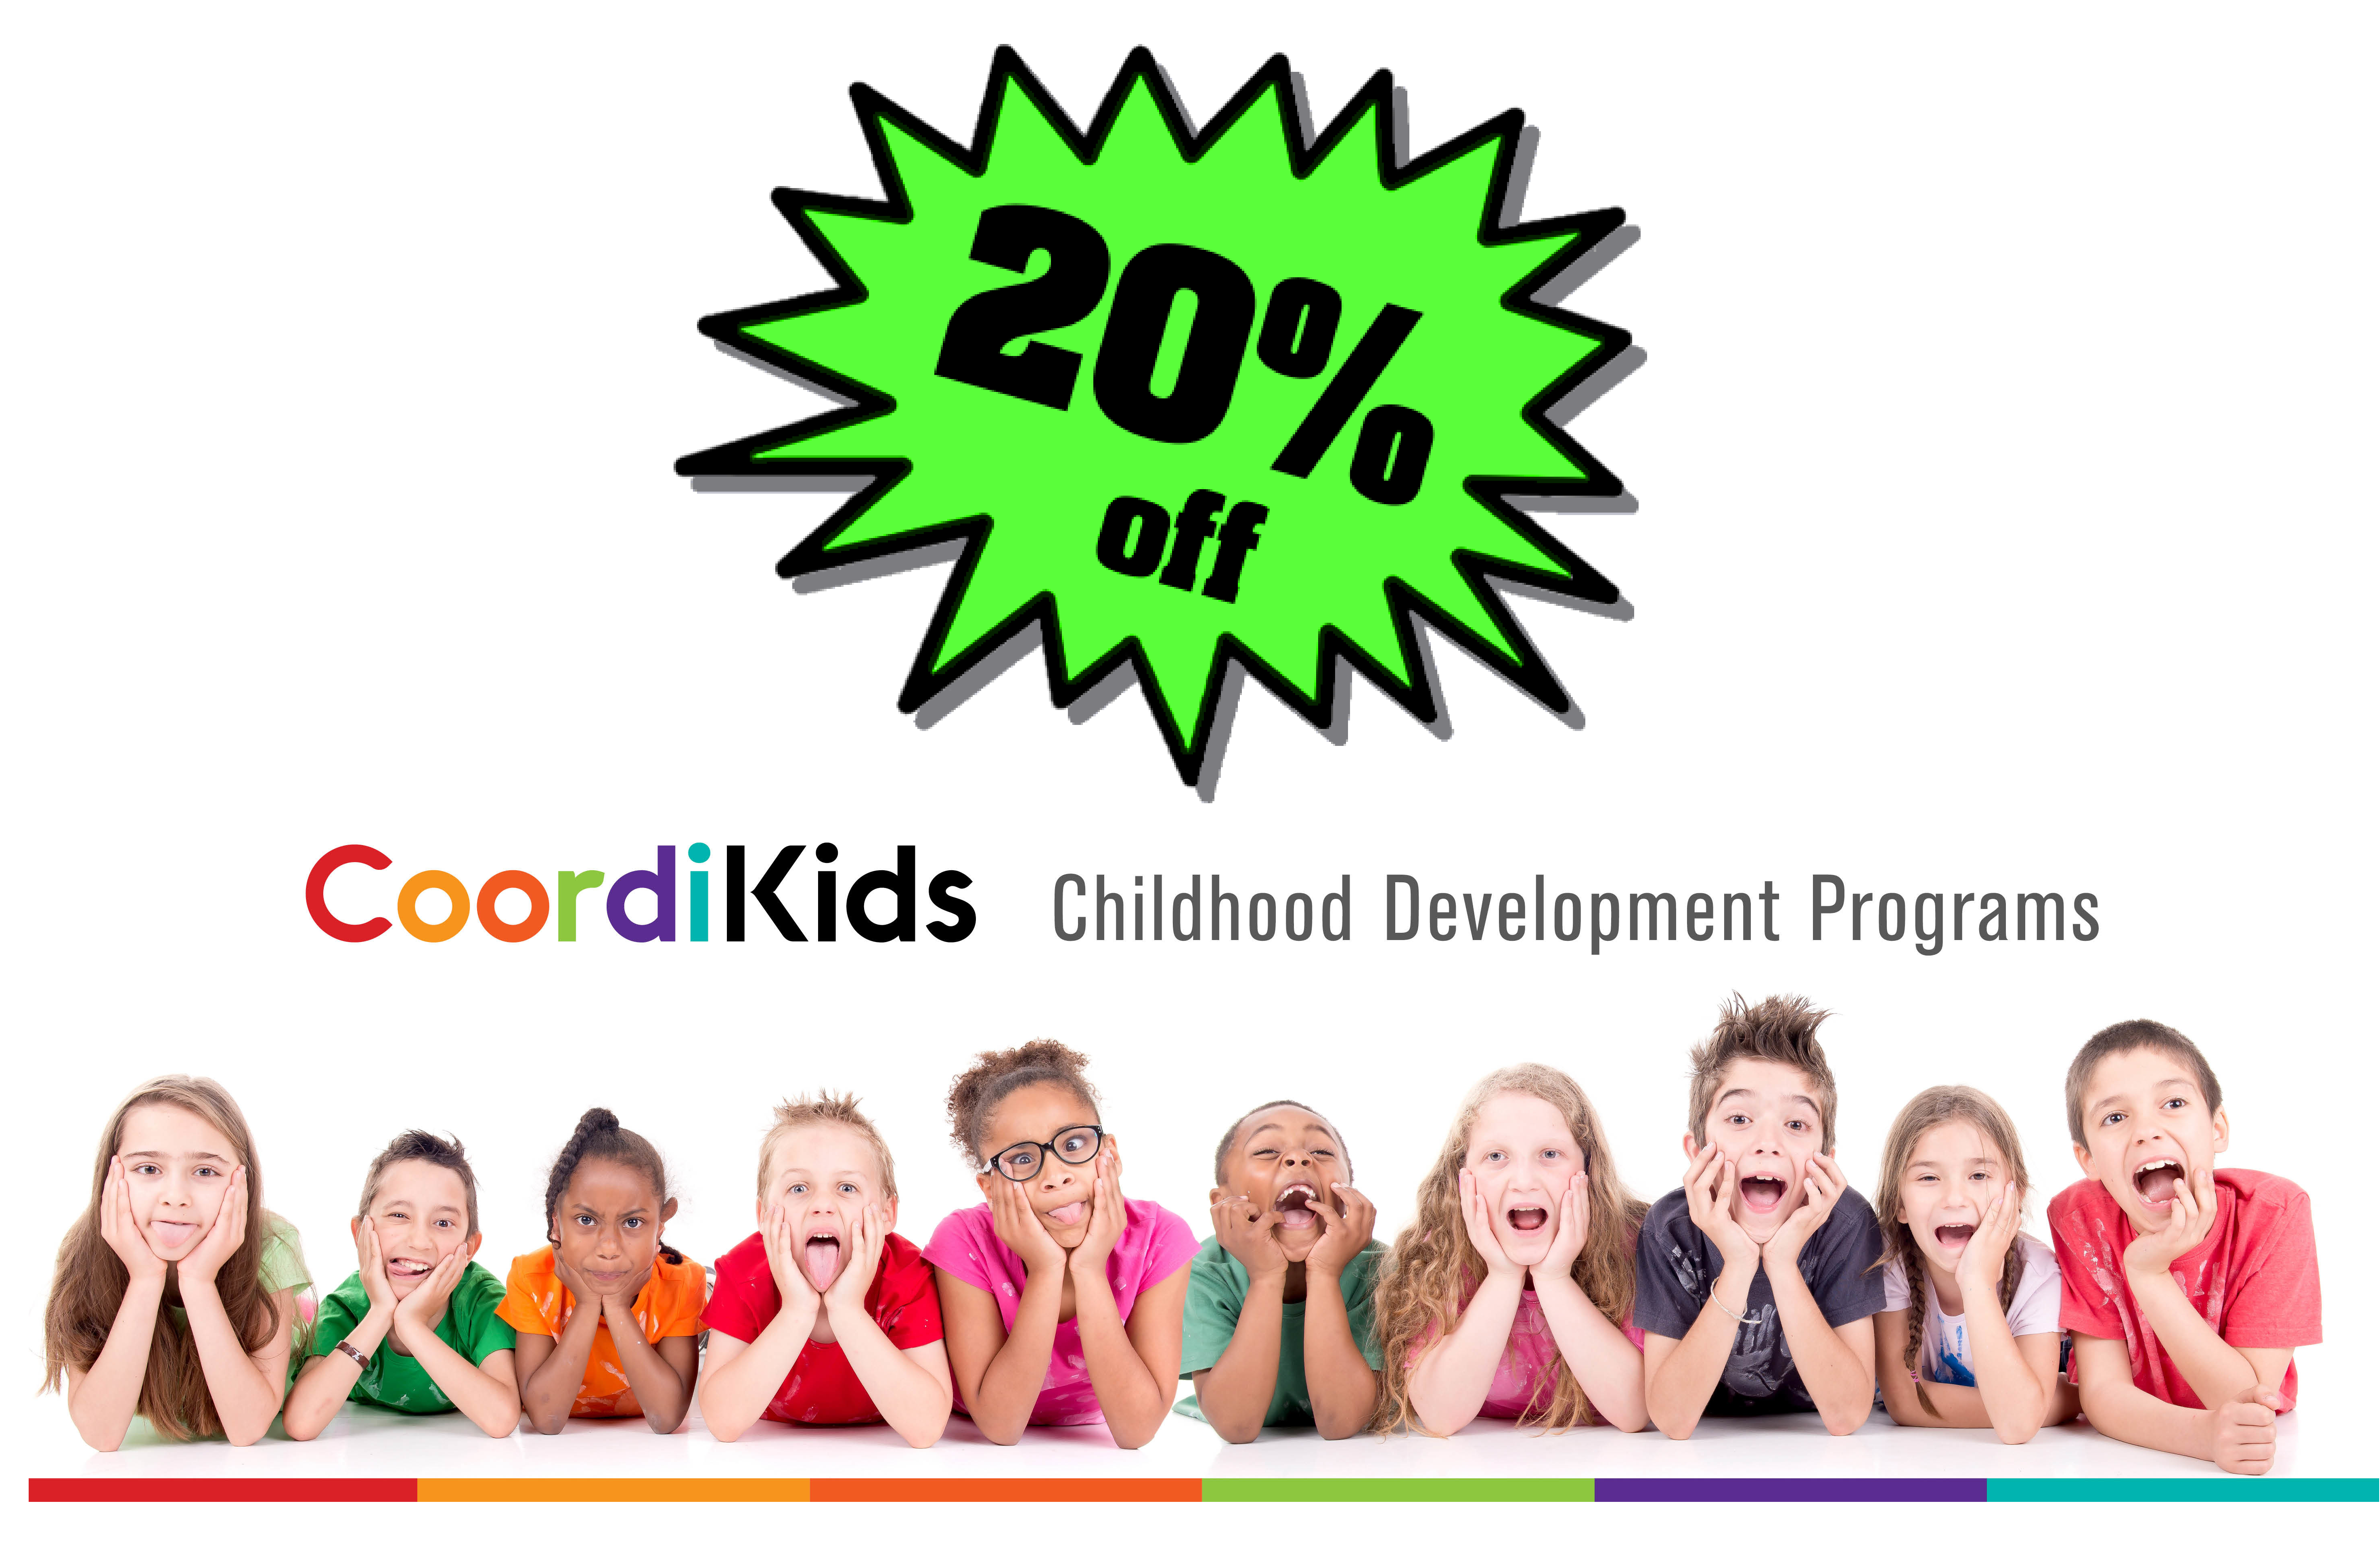 Click to receive 20% off coordikids developmental programs